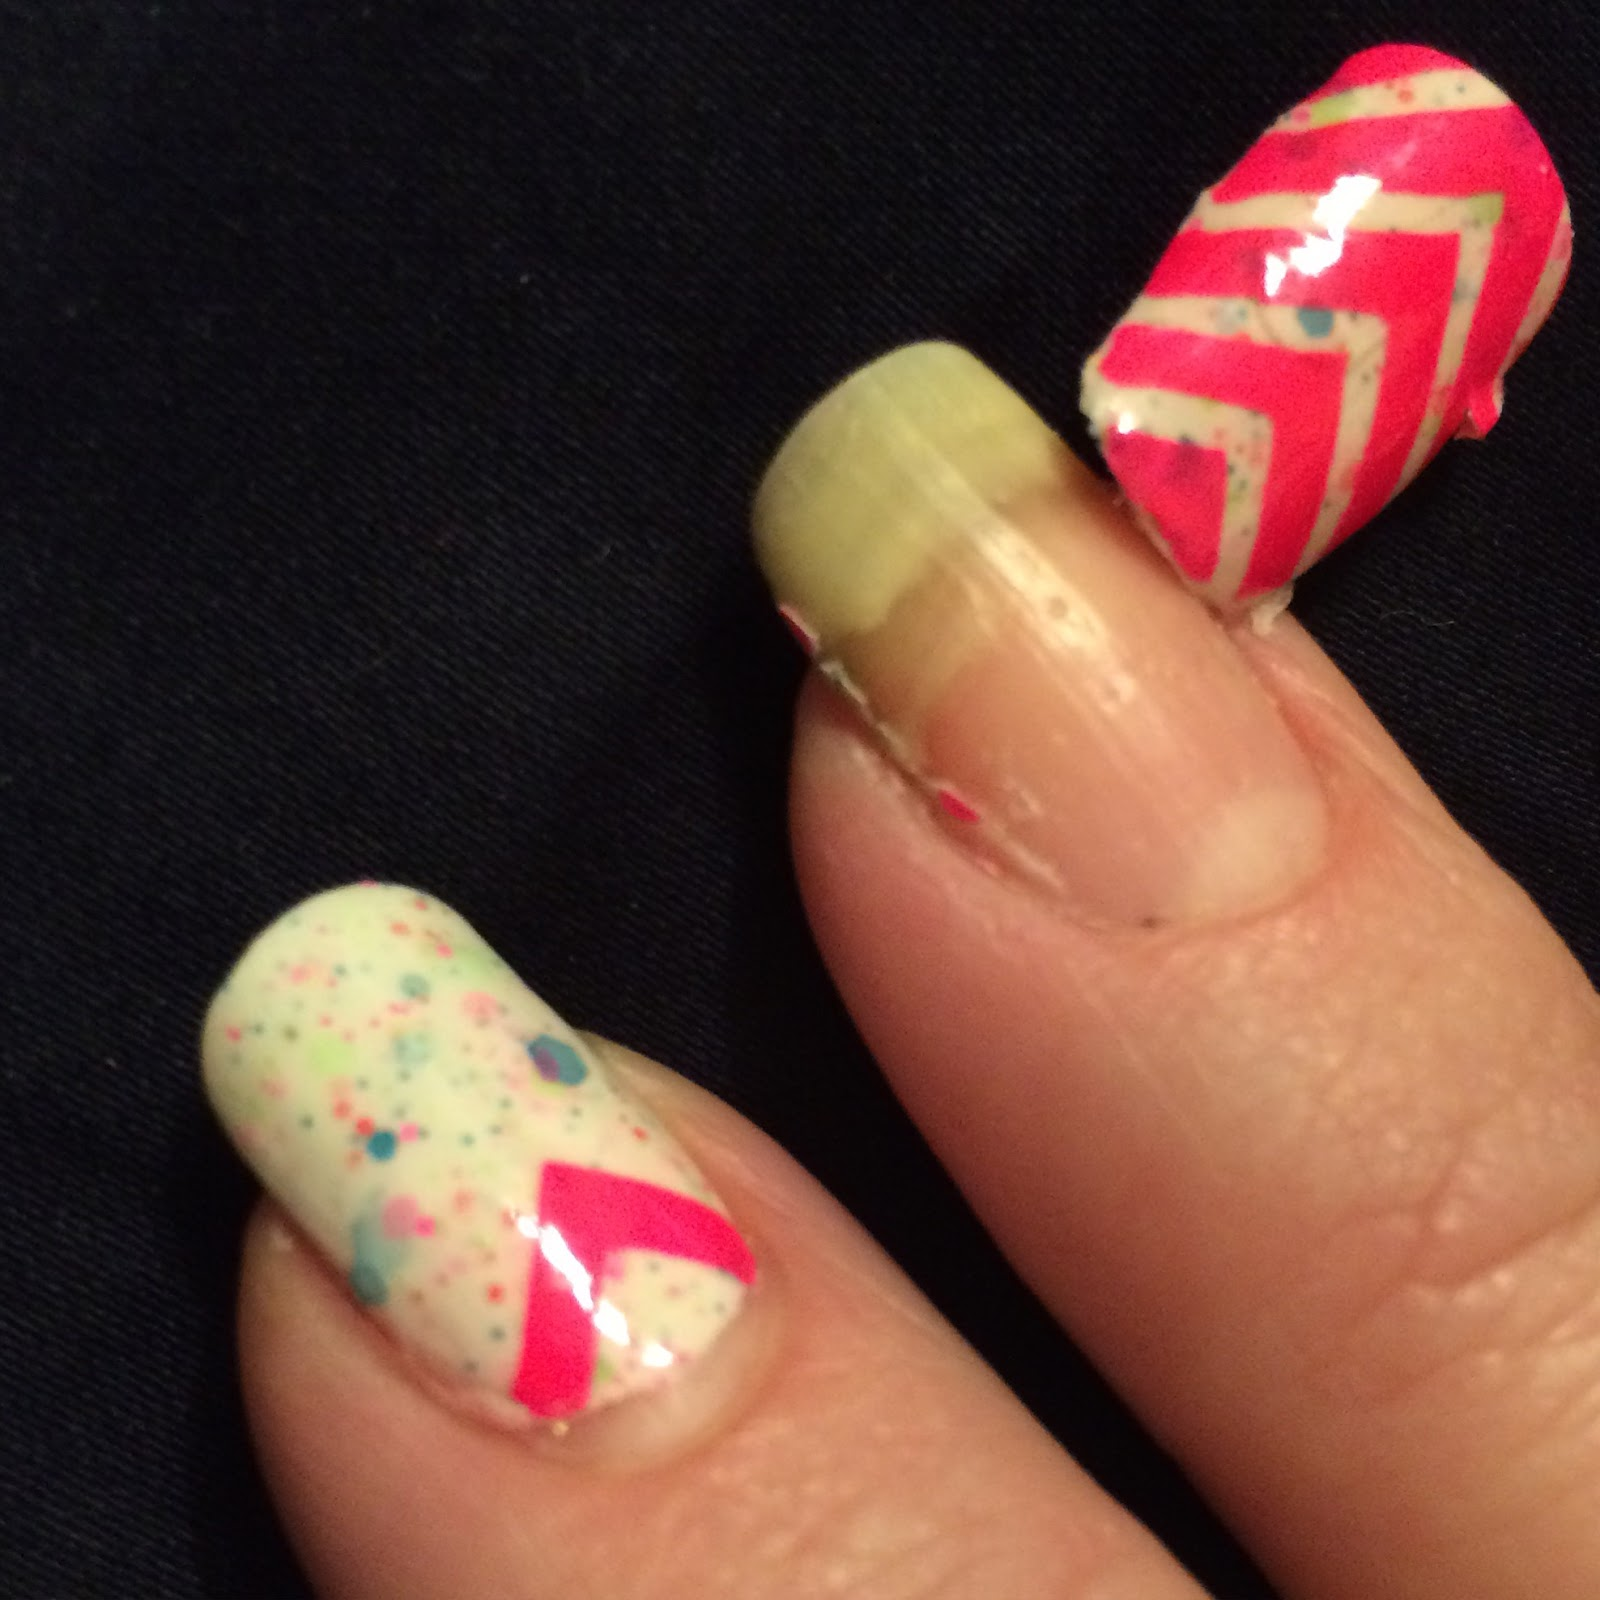 Tori\'s Adventures In Nail Art: How to Fix a Broken Nail